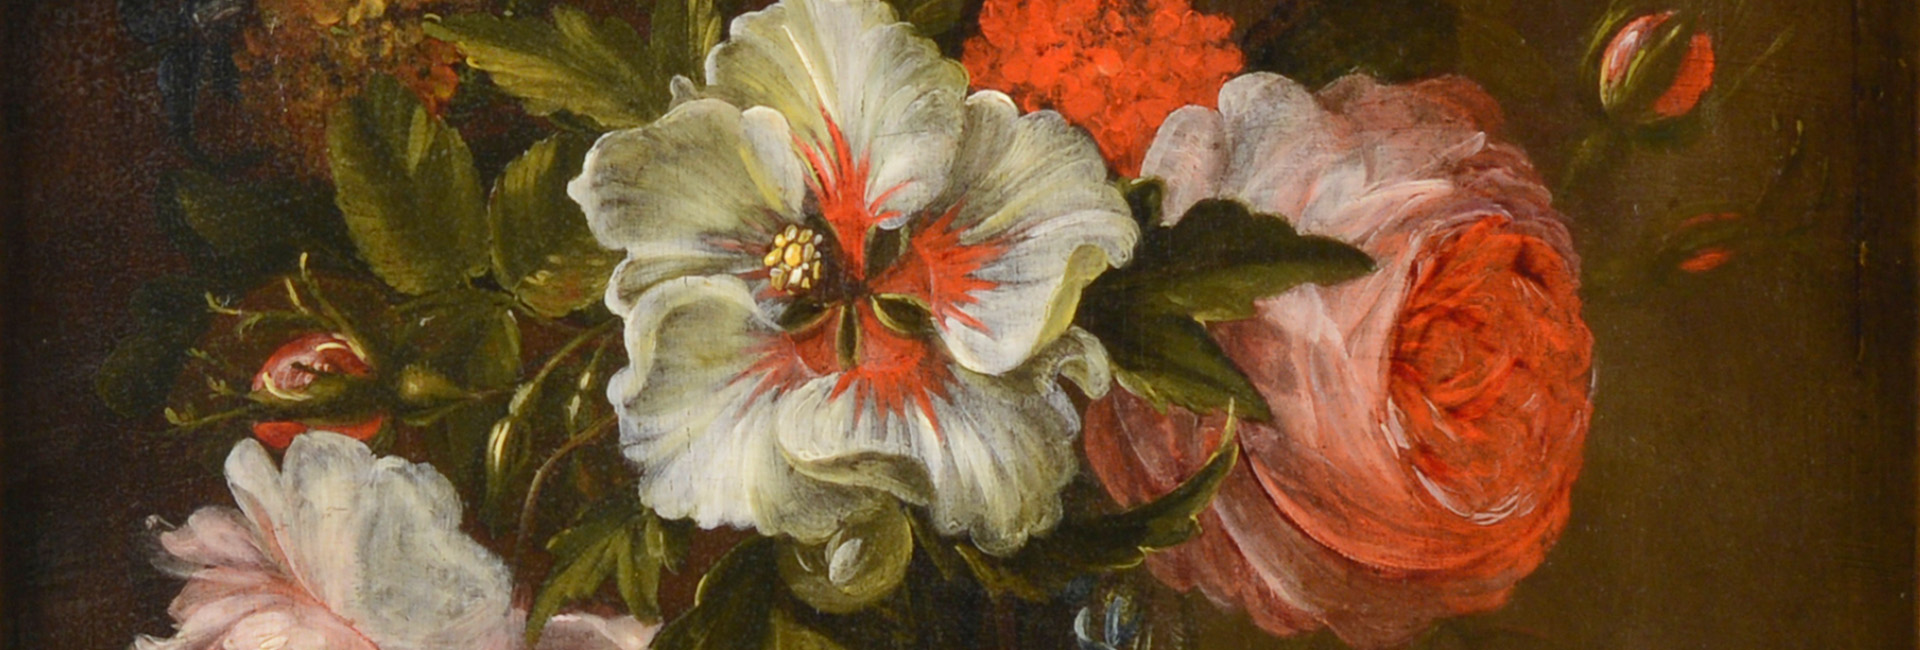 FLOWERS [Jan Kašpar Hirschely]